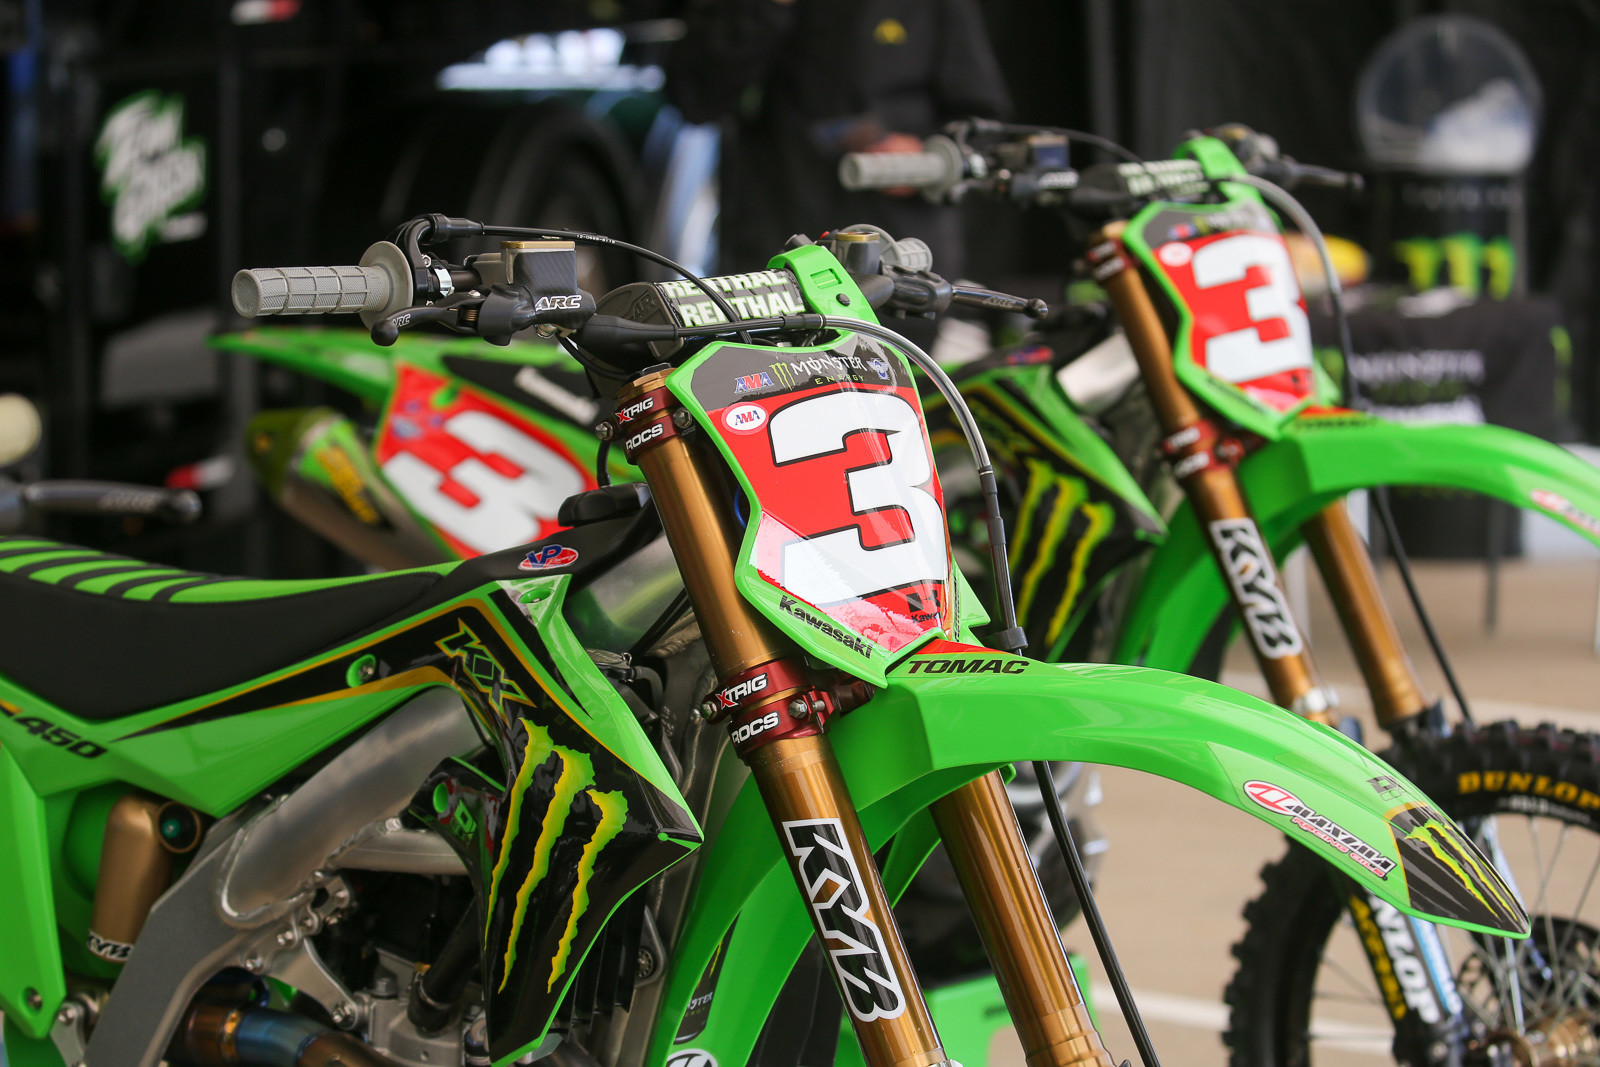 Picking up the red leaders plates before a Triple Crown weekend means having twice as many of them. They were prominently displayed on both the race and backup bike for Eli Tomac.